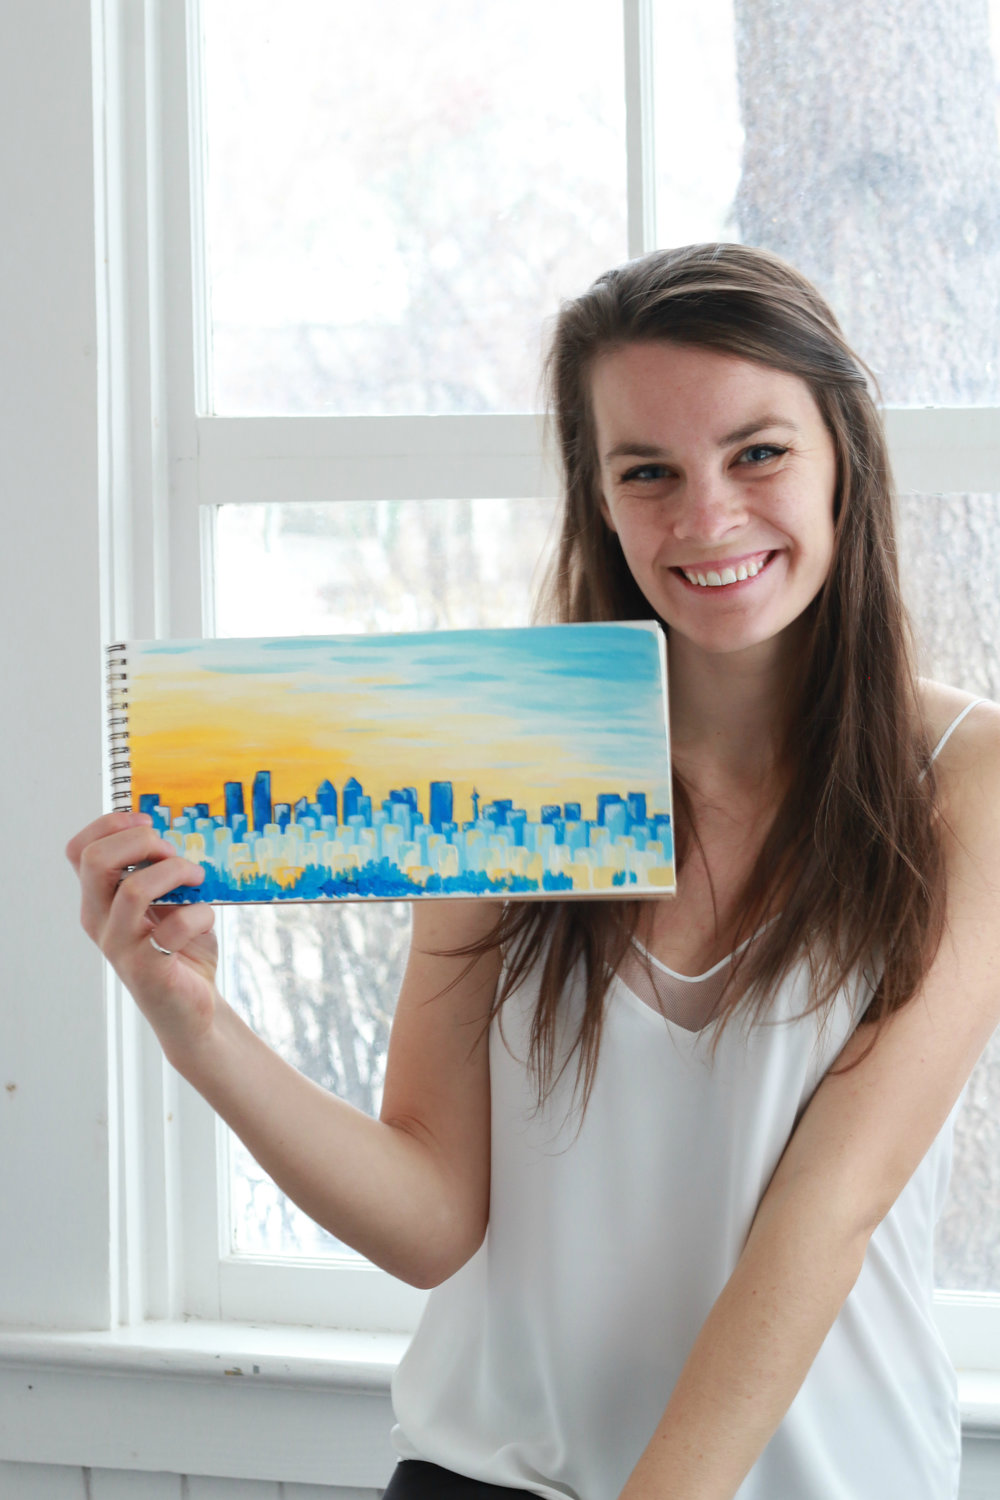 Here is one of my favourite paintings from my most recent photo shoot! I love this painting of the Calgary skyline.